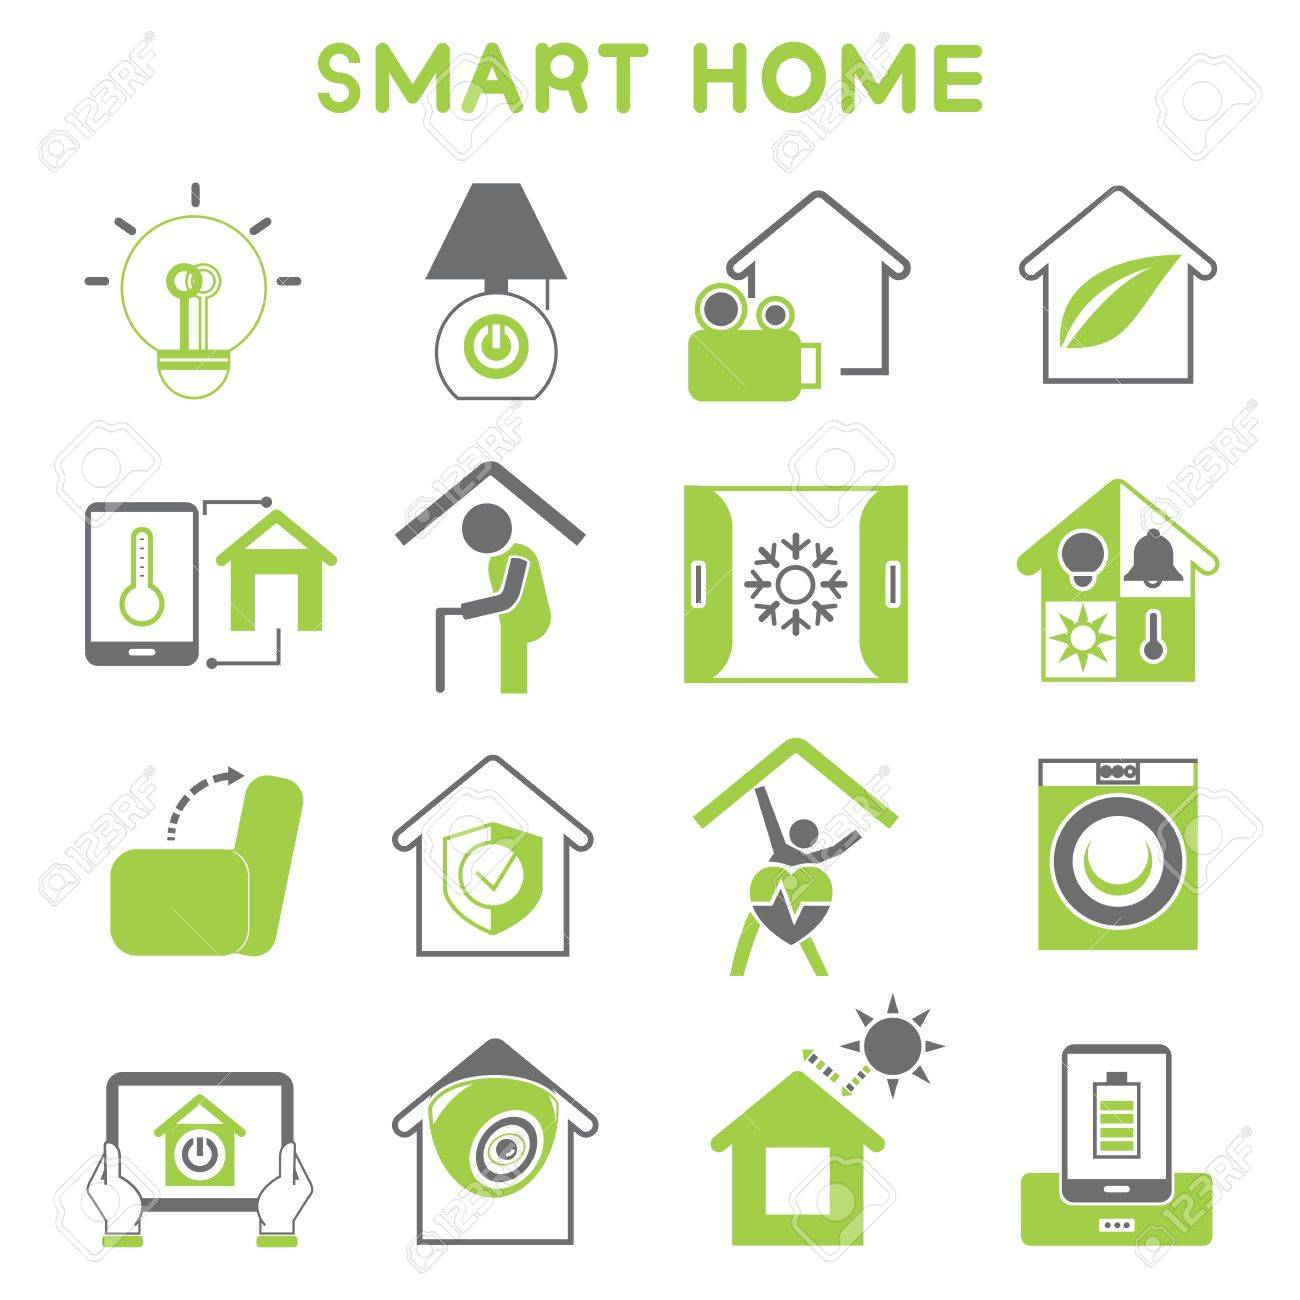 Smart Home Icons Green Color Design Royalty Free Cliparts, Vectors ...